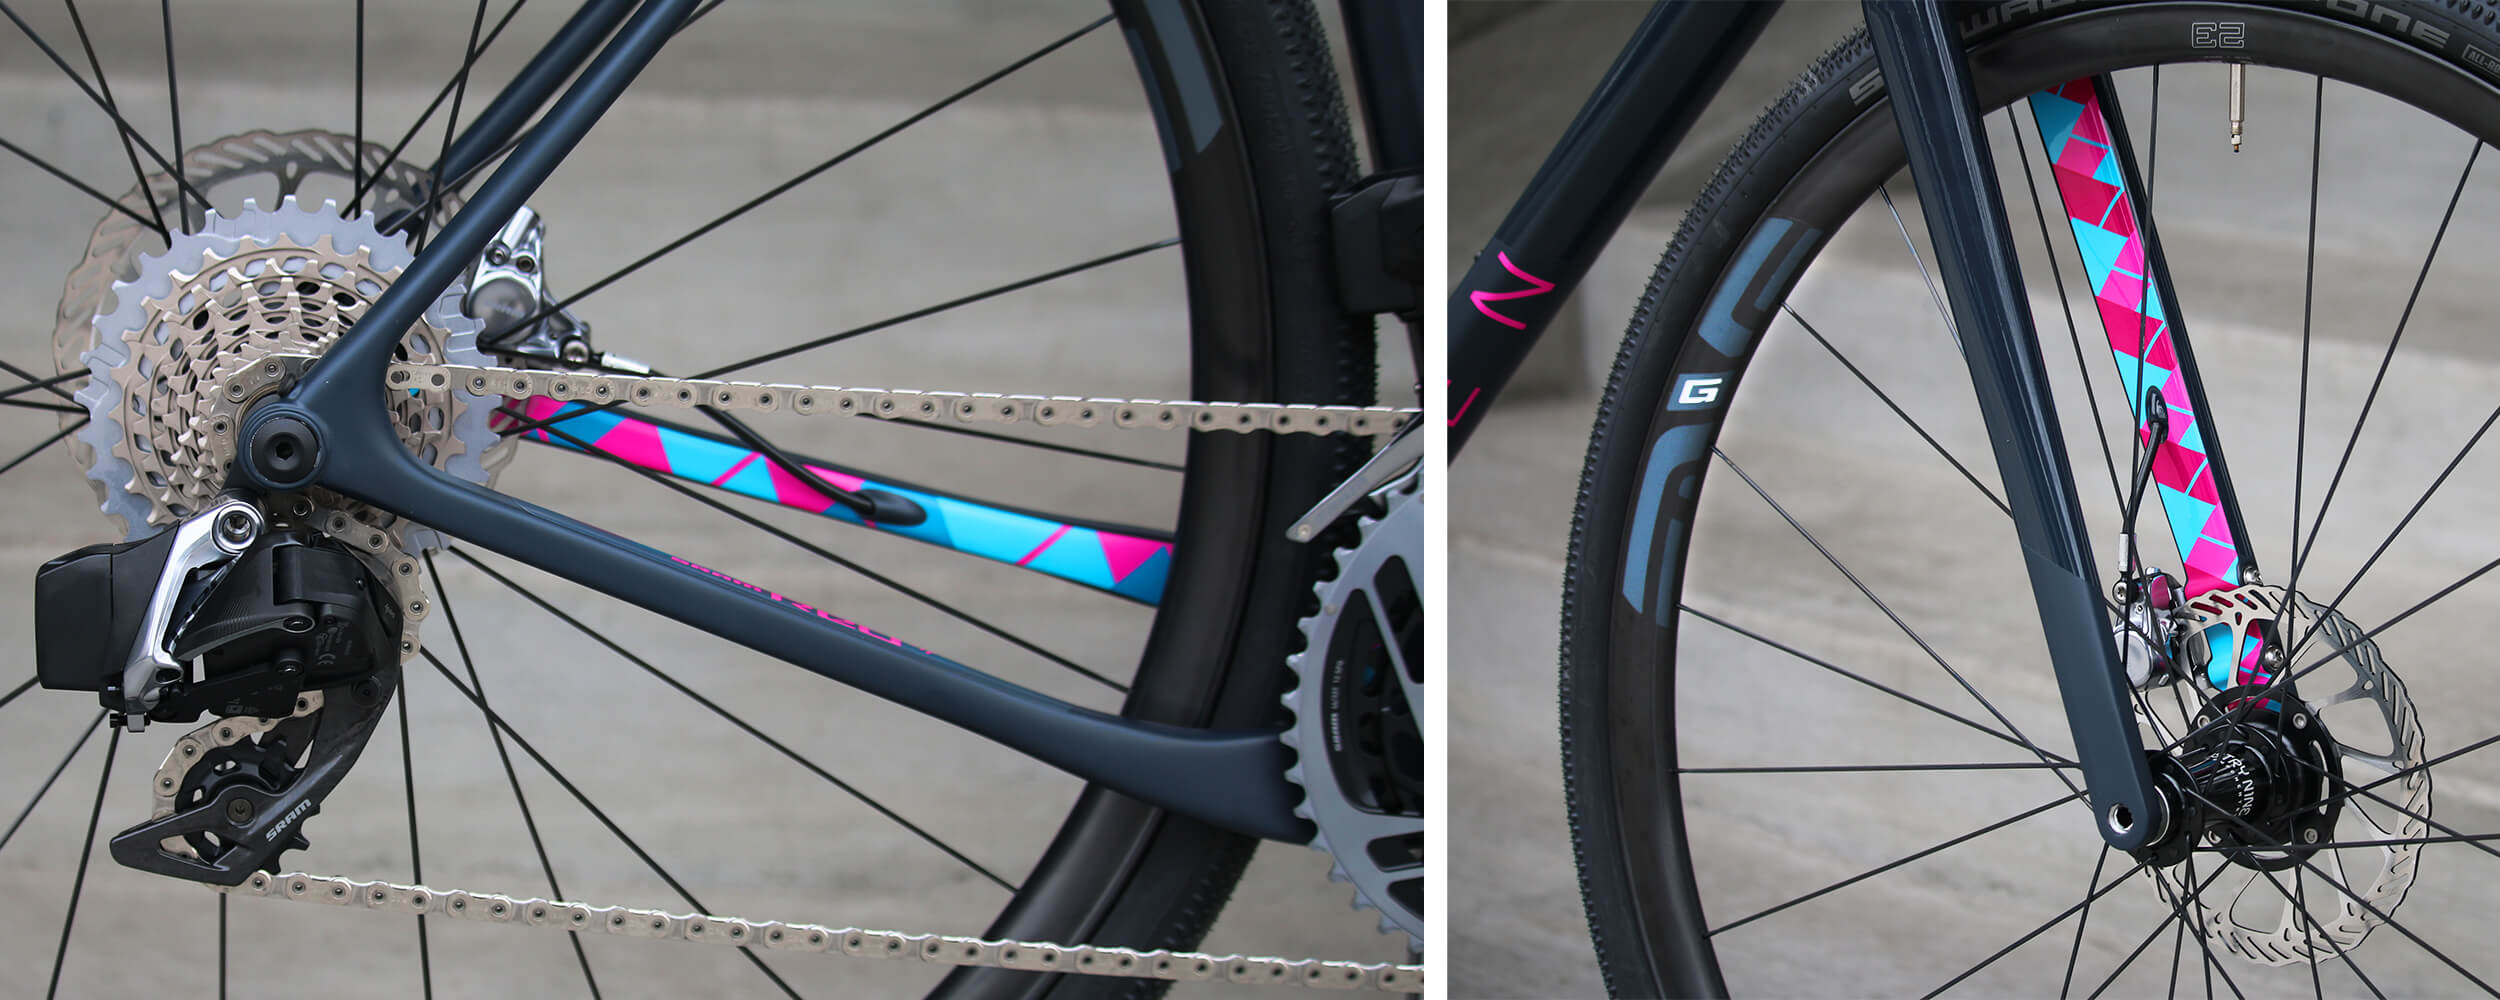 OPEN U.P. Limited Edition SRAM RED eTap AXS Detail - Contender Bicycles